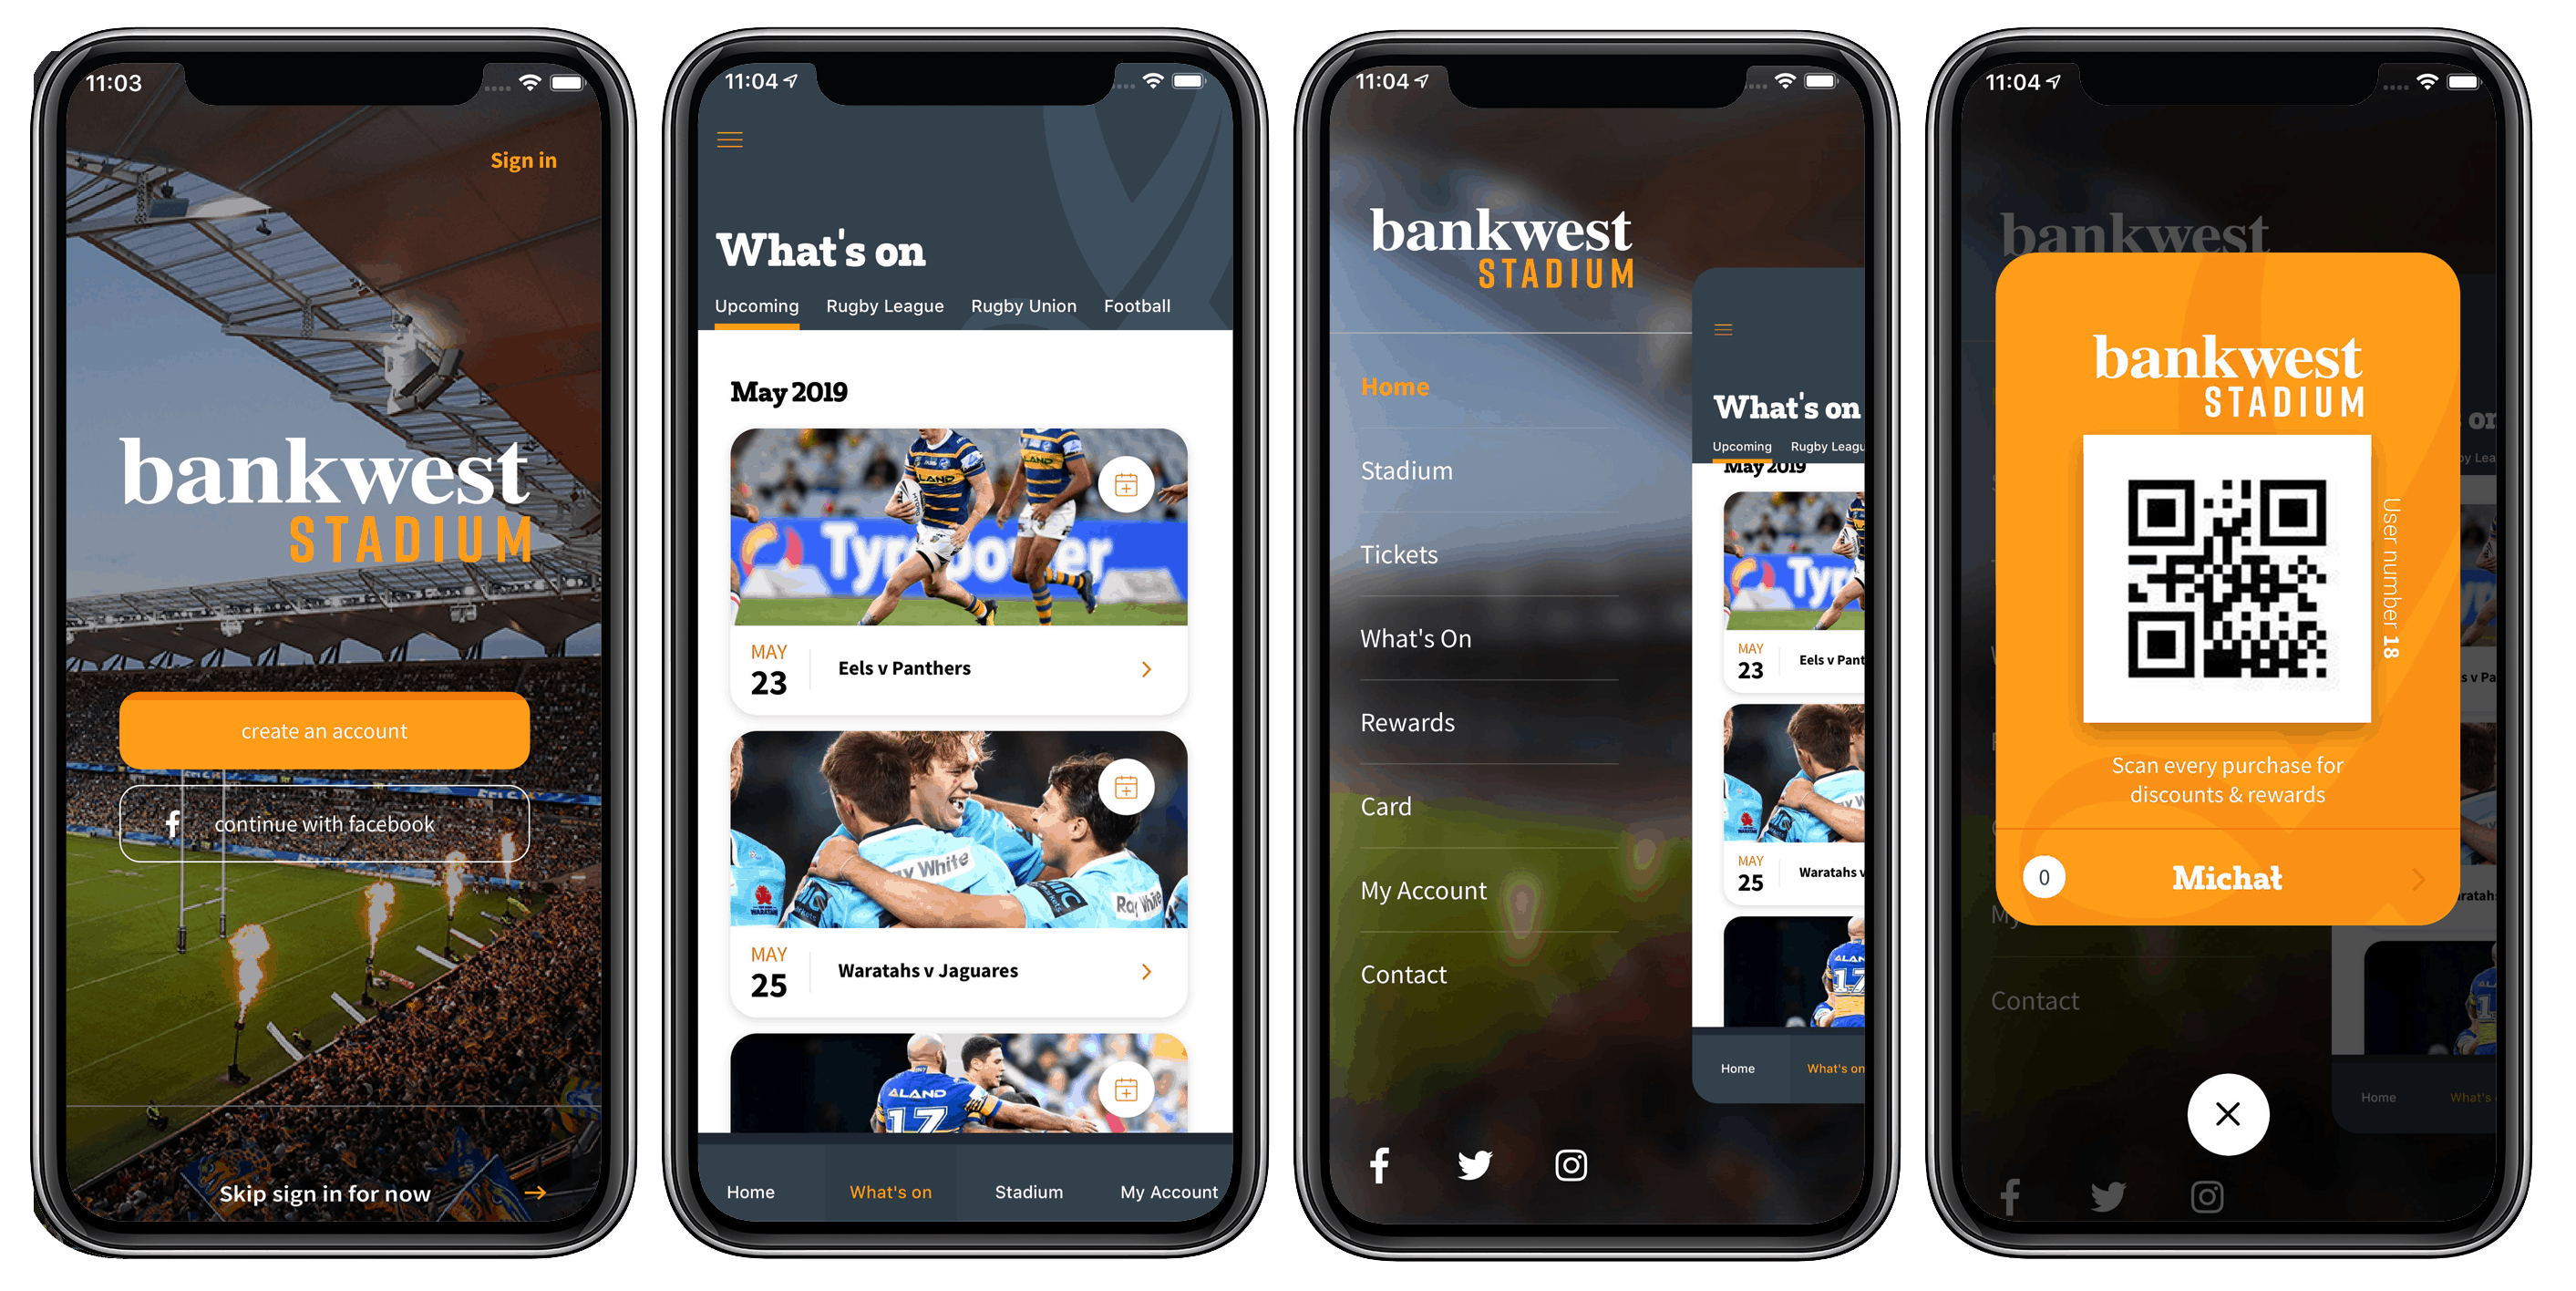 Bankwest Stadium Score App Preview